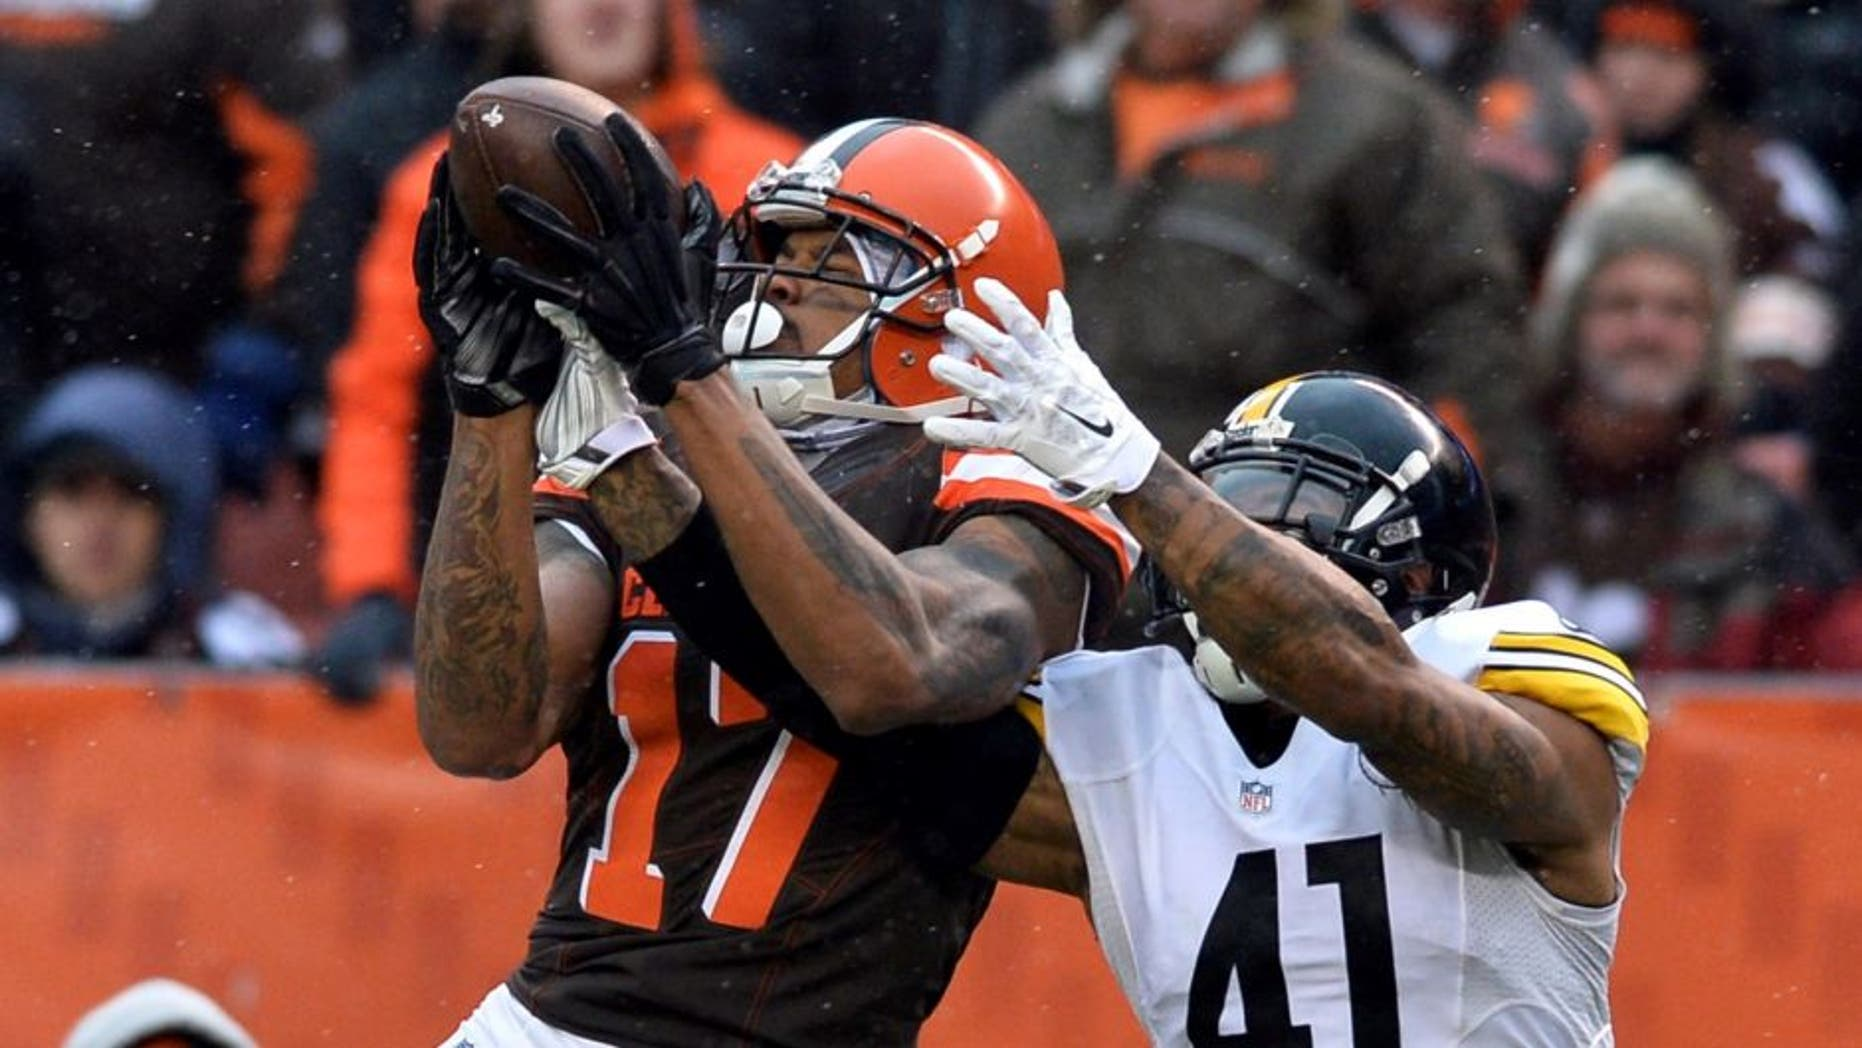 Jan 3, 2016; Cleveland, OH, USA; Cleveland Browns wide receiver Terrelle Pryor (17) makes a catch as Pittsburgh Steelers cornerback Antwon Blake (41) defends during the second quarter at FirstEnergy Stadium. Mandatory Credit: Ken Blaze-USA TODAY Sports